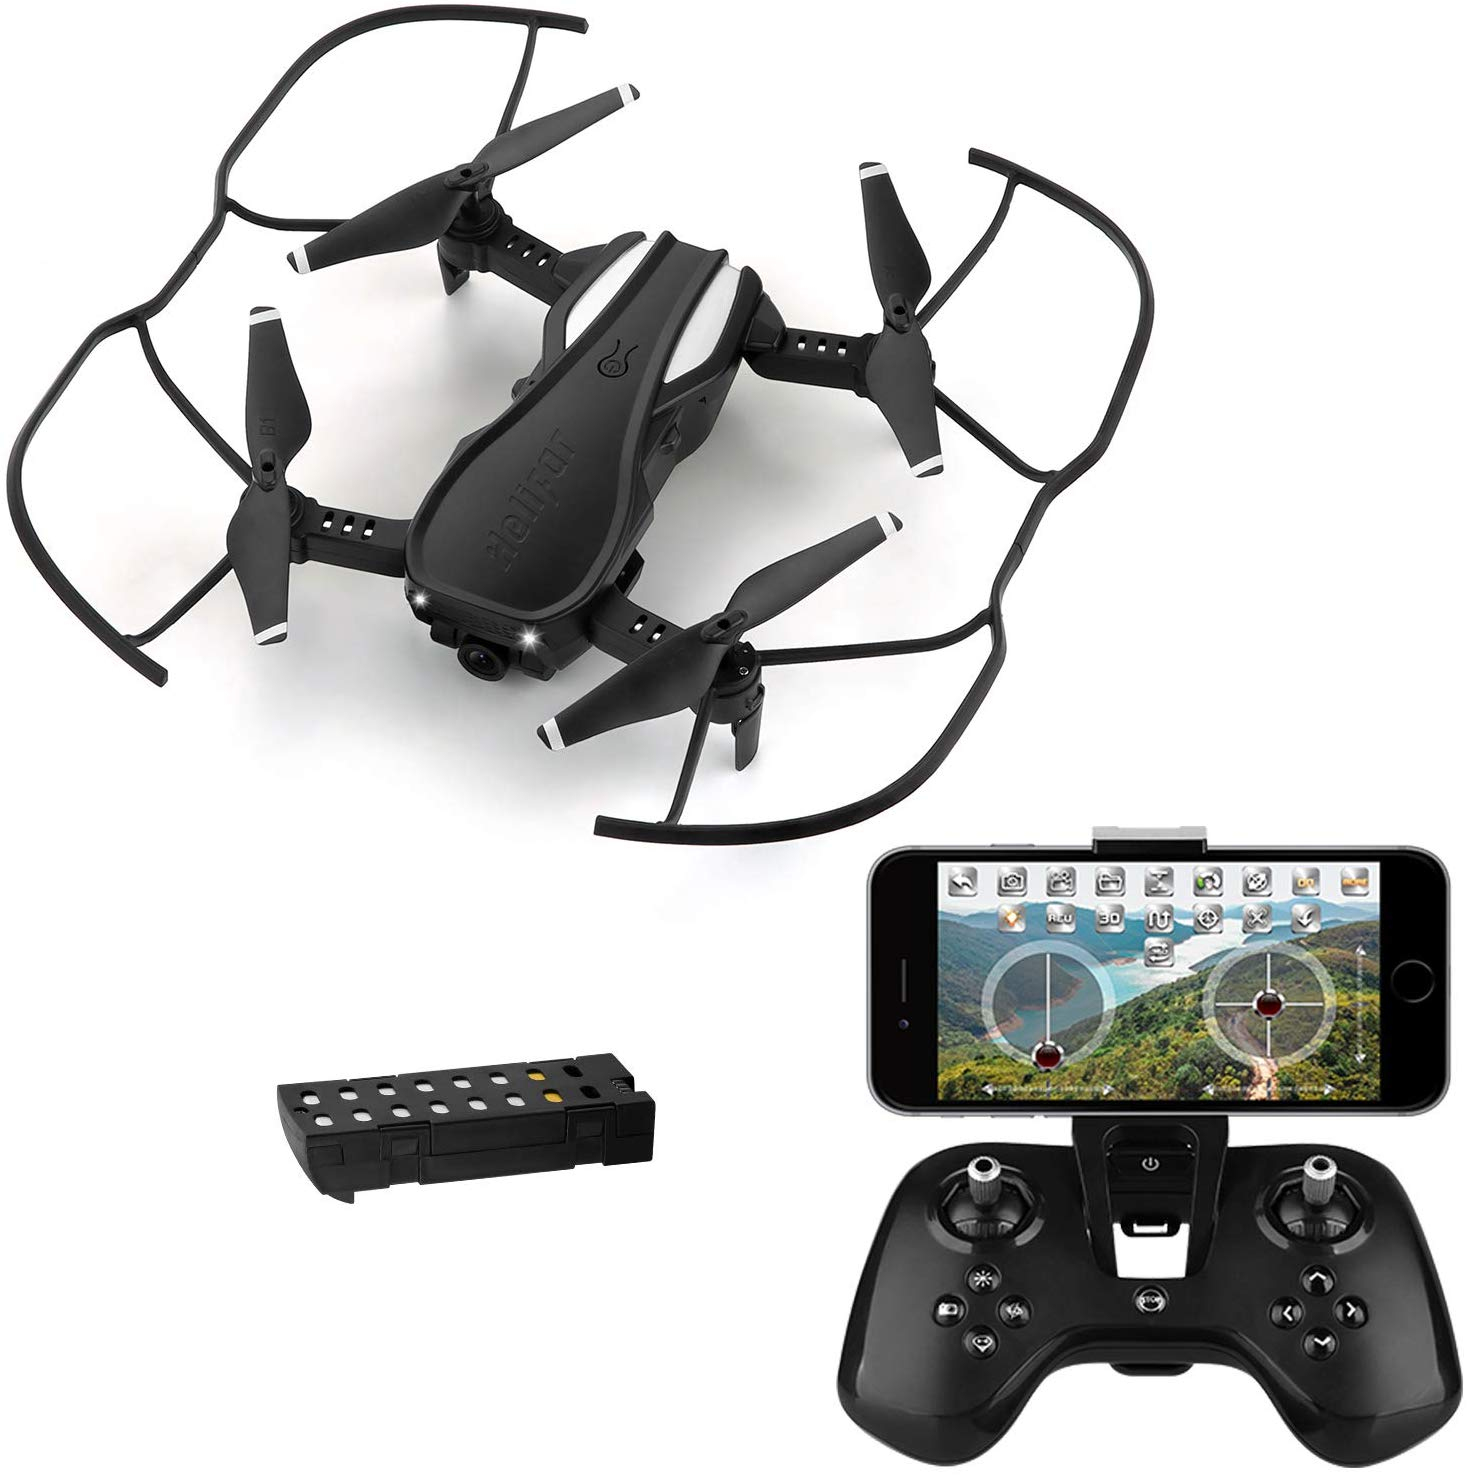 HELIFAR WiFi FPV Drone with 720P HD Camera, H1 Wide-Angle Live Video RC Quadcopter